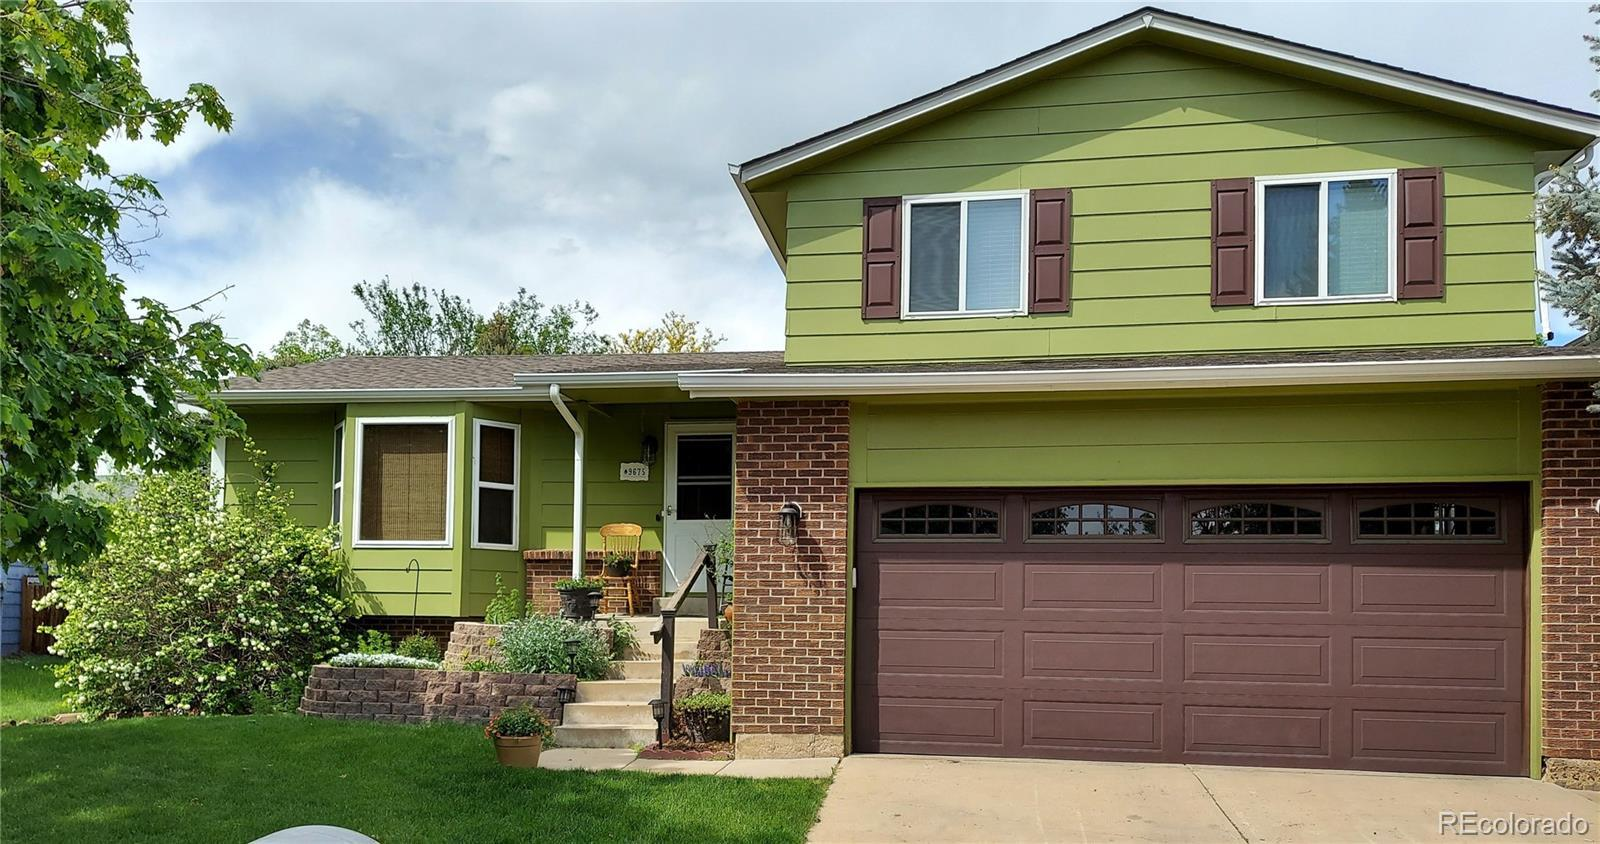 9675 W 105th Way, Westminster, CO 80021 - #: 4862066